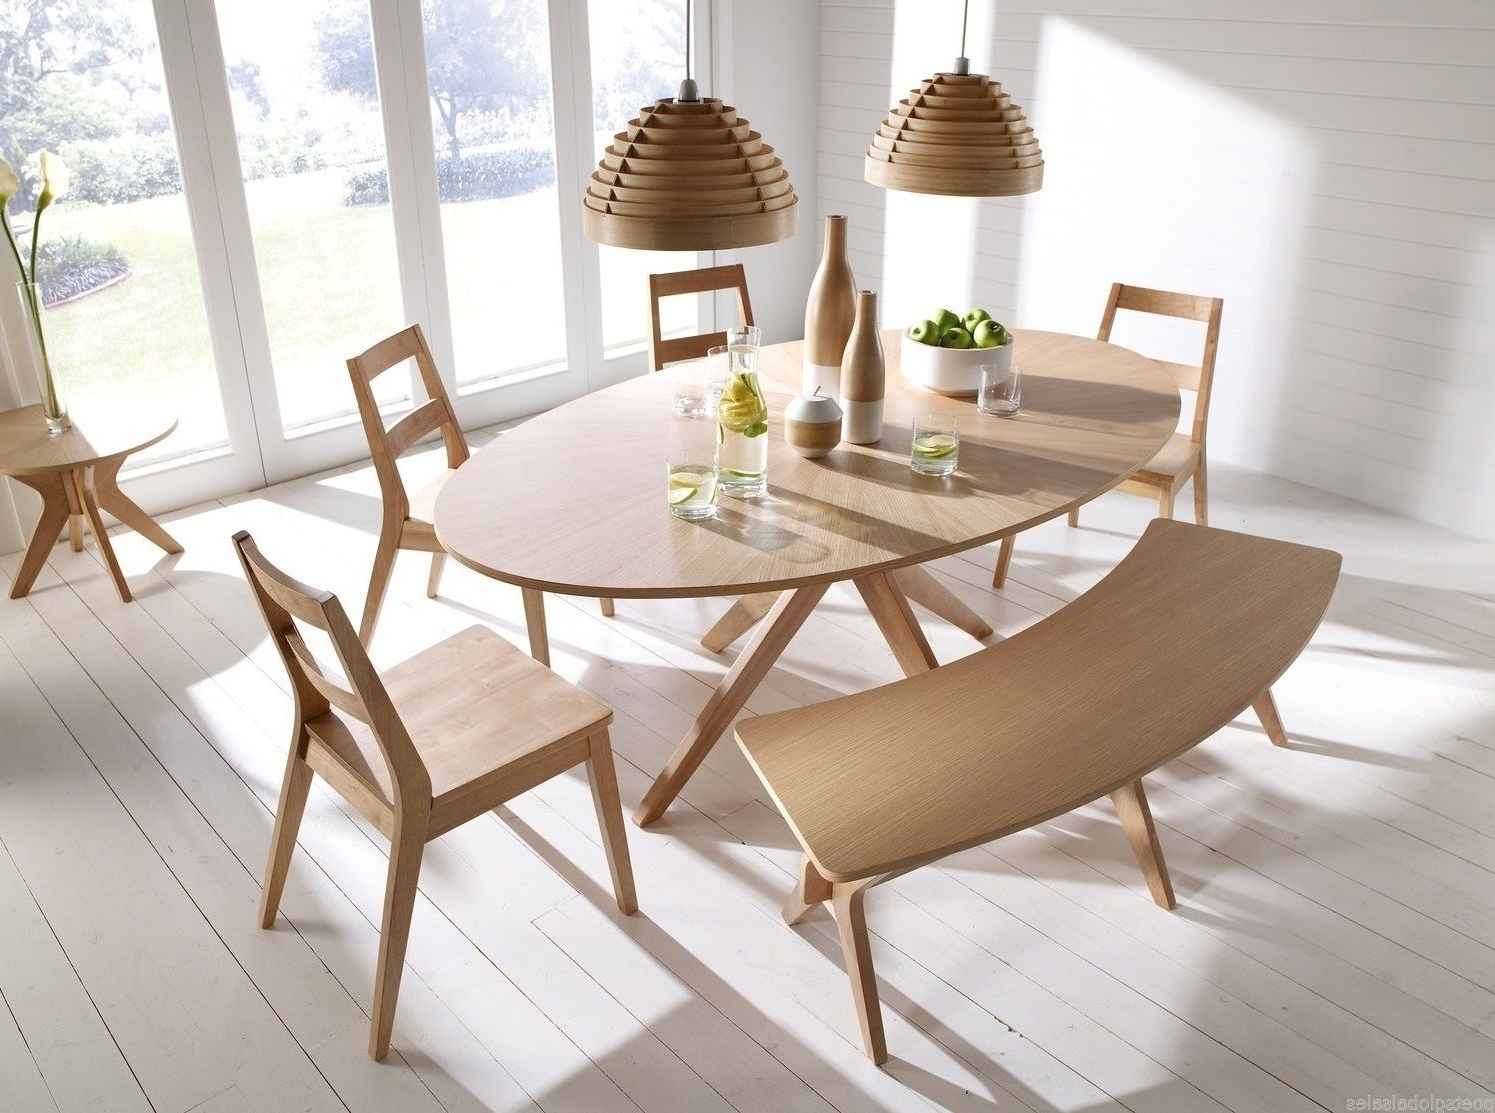 Most Recent Wooden Dining Table Oak Kitchen Living Room Wood Rustic Oval Regarding Ebay Dining Suites (View 18 of 25)